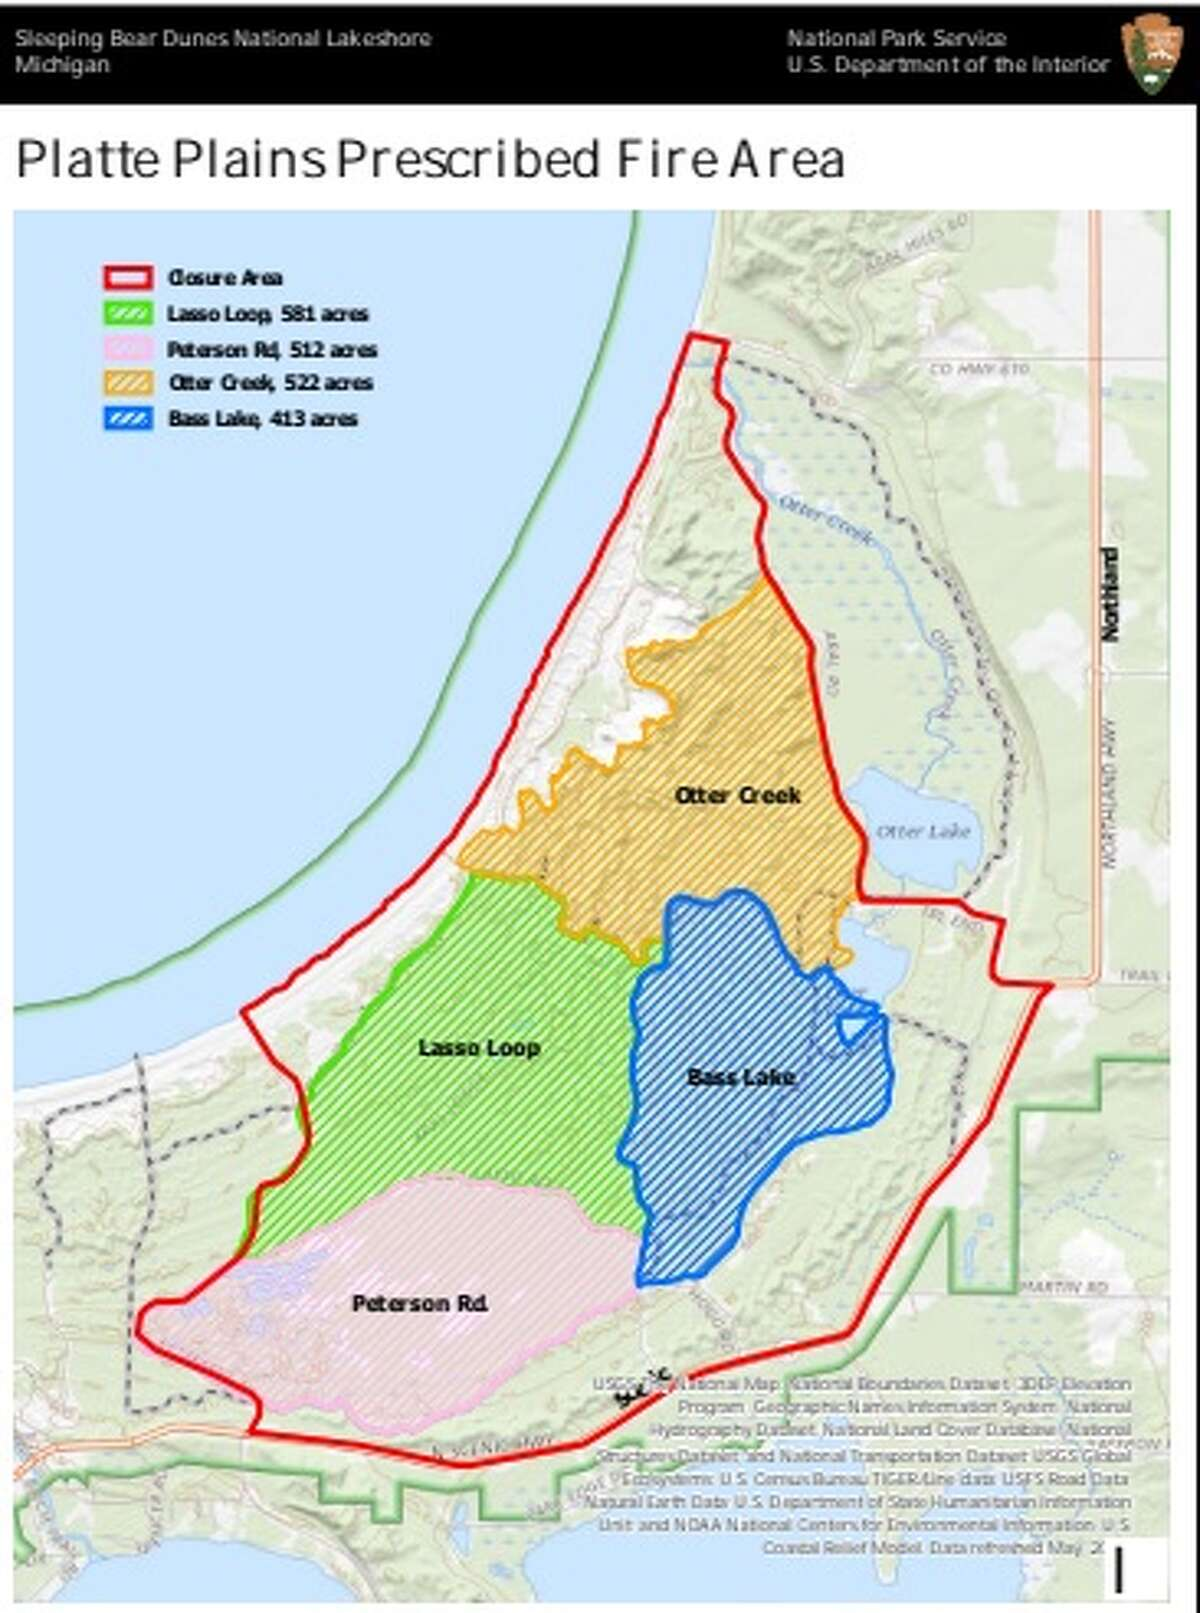 The National Park Service is planning a scheduled burn in several areas of the Sleeping Bear Dunes National Lakeshore.